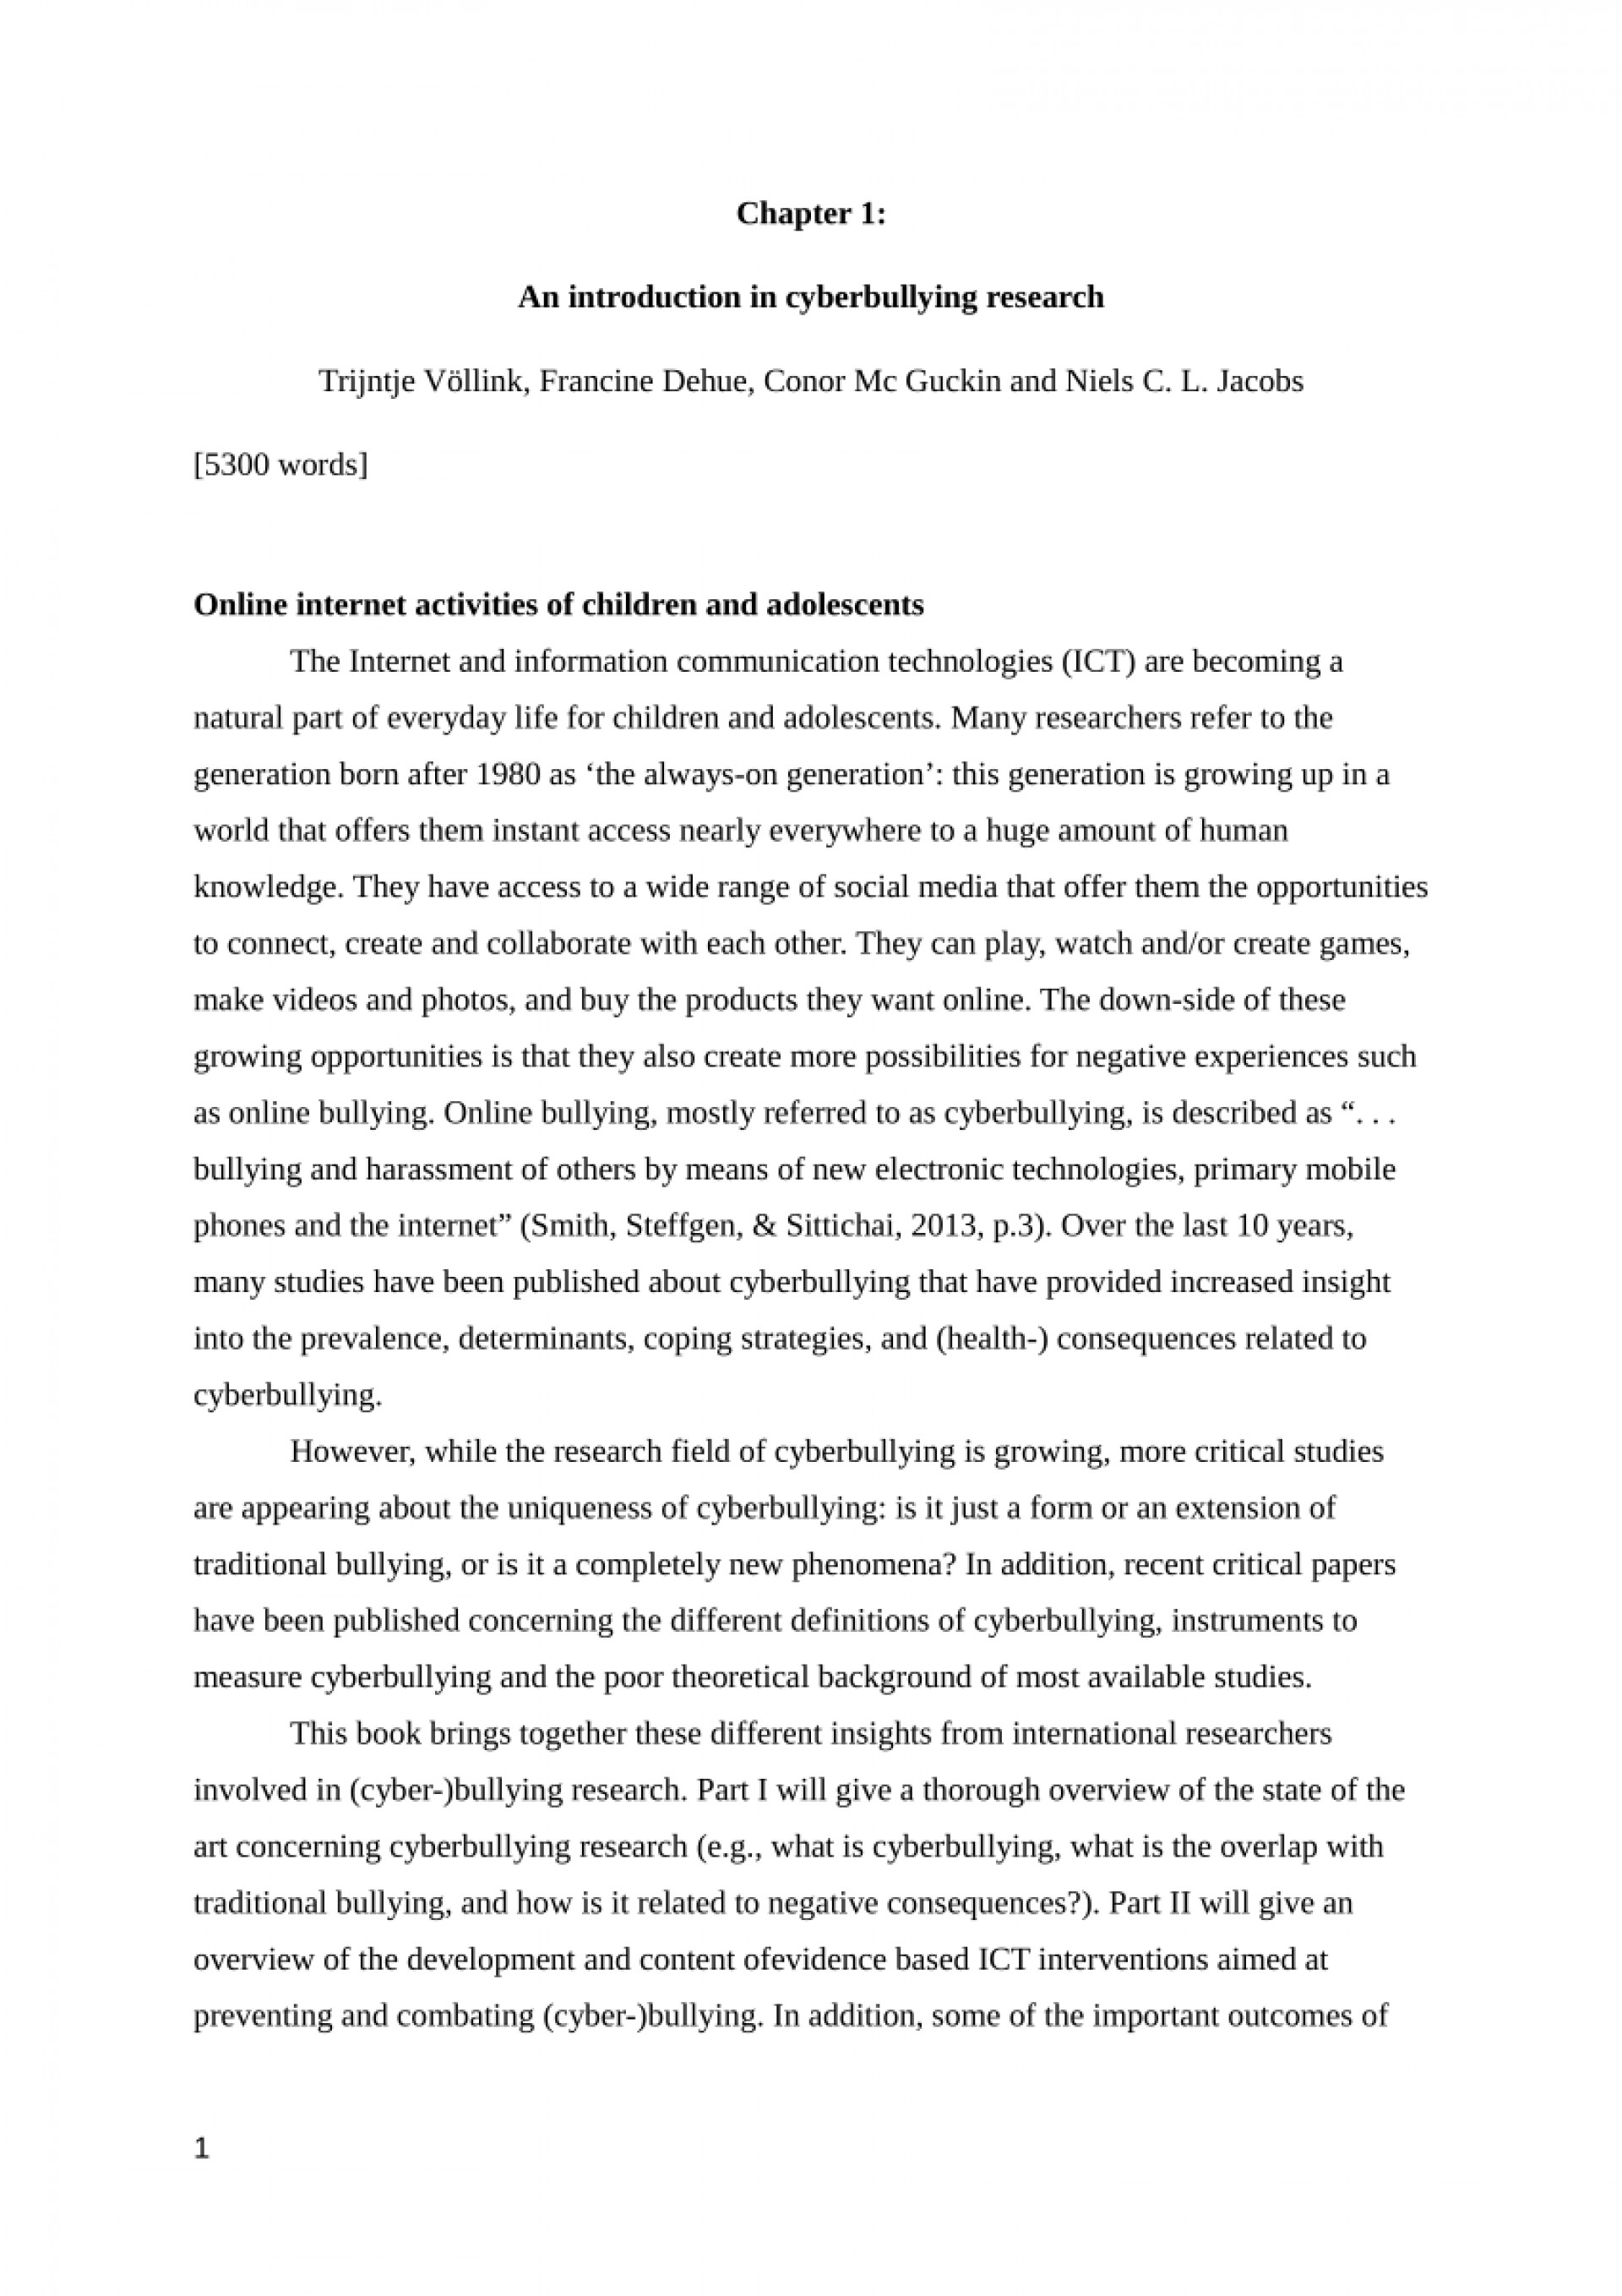 001 Cyberbullying Research Paper Pdf Unique Effects Of 1920